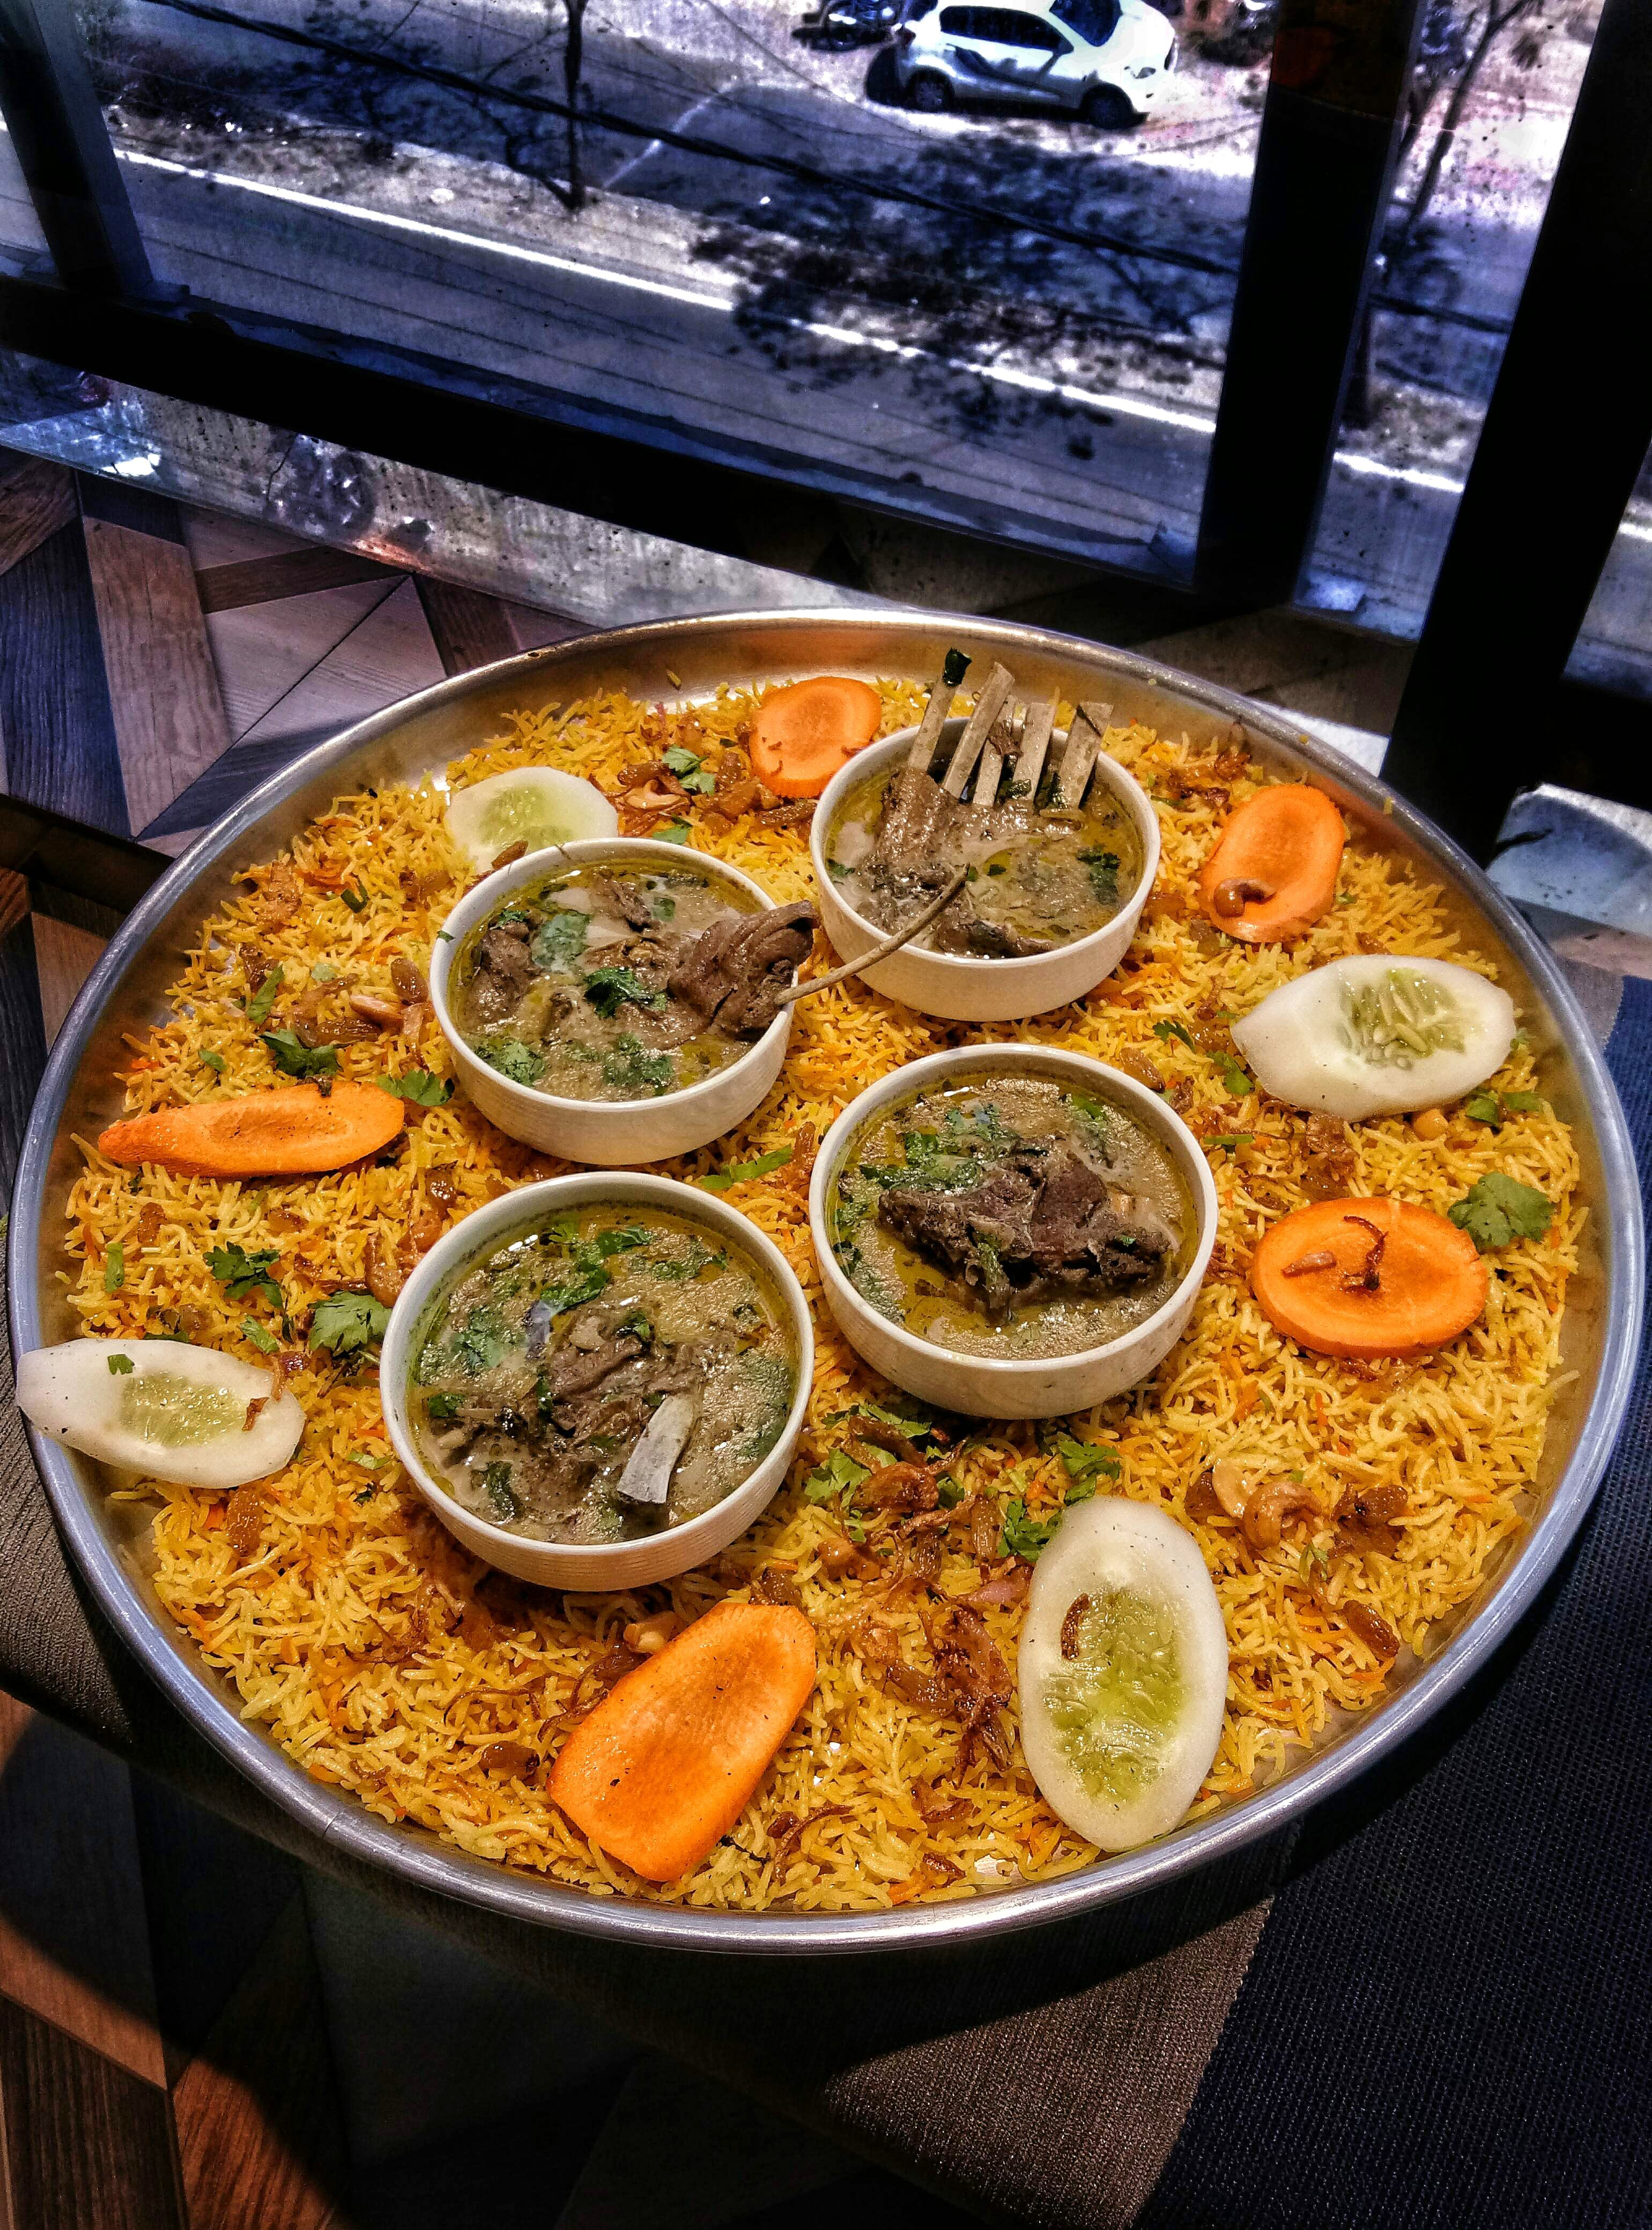 Dish,Food,Cuisine,Meal,Ingredient,Curry,Buffet,Lunch,Indian cuisine,Produce